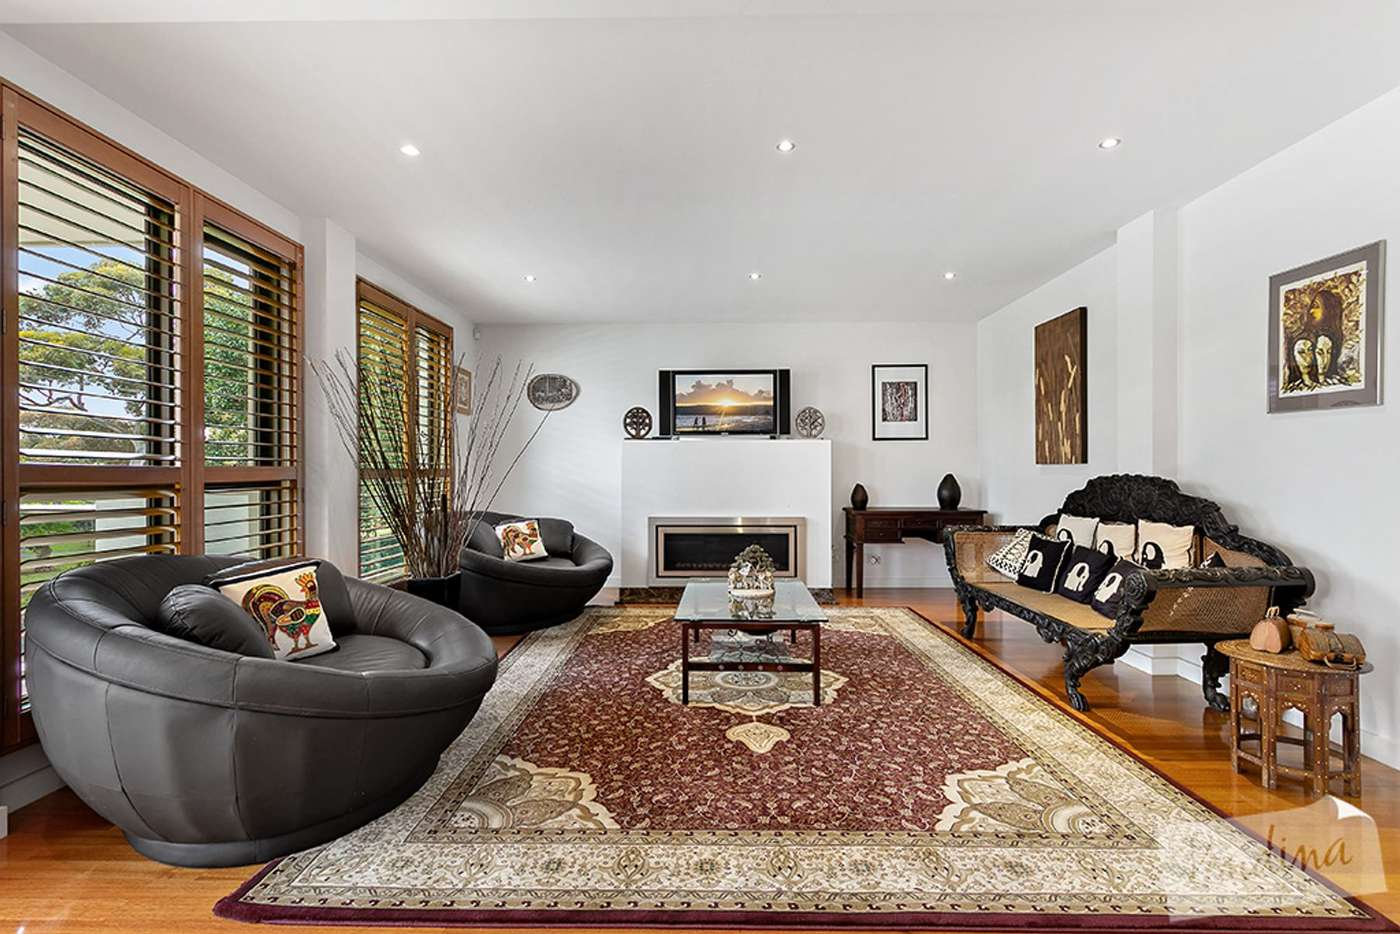 Fifth view of Homely house listing, 36 Scott Street, Essendon VIC 3040